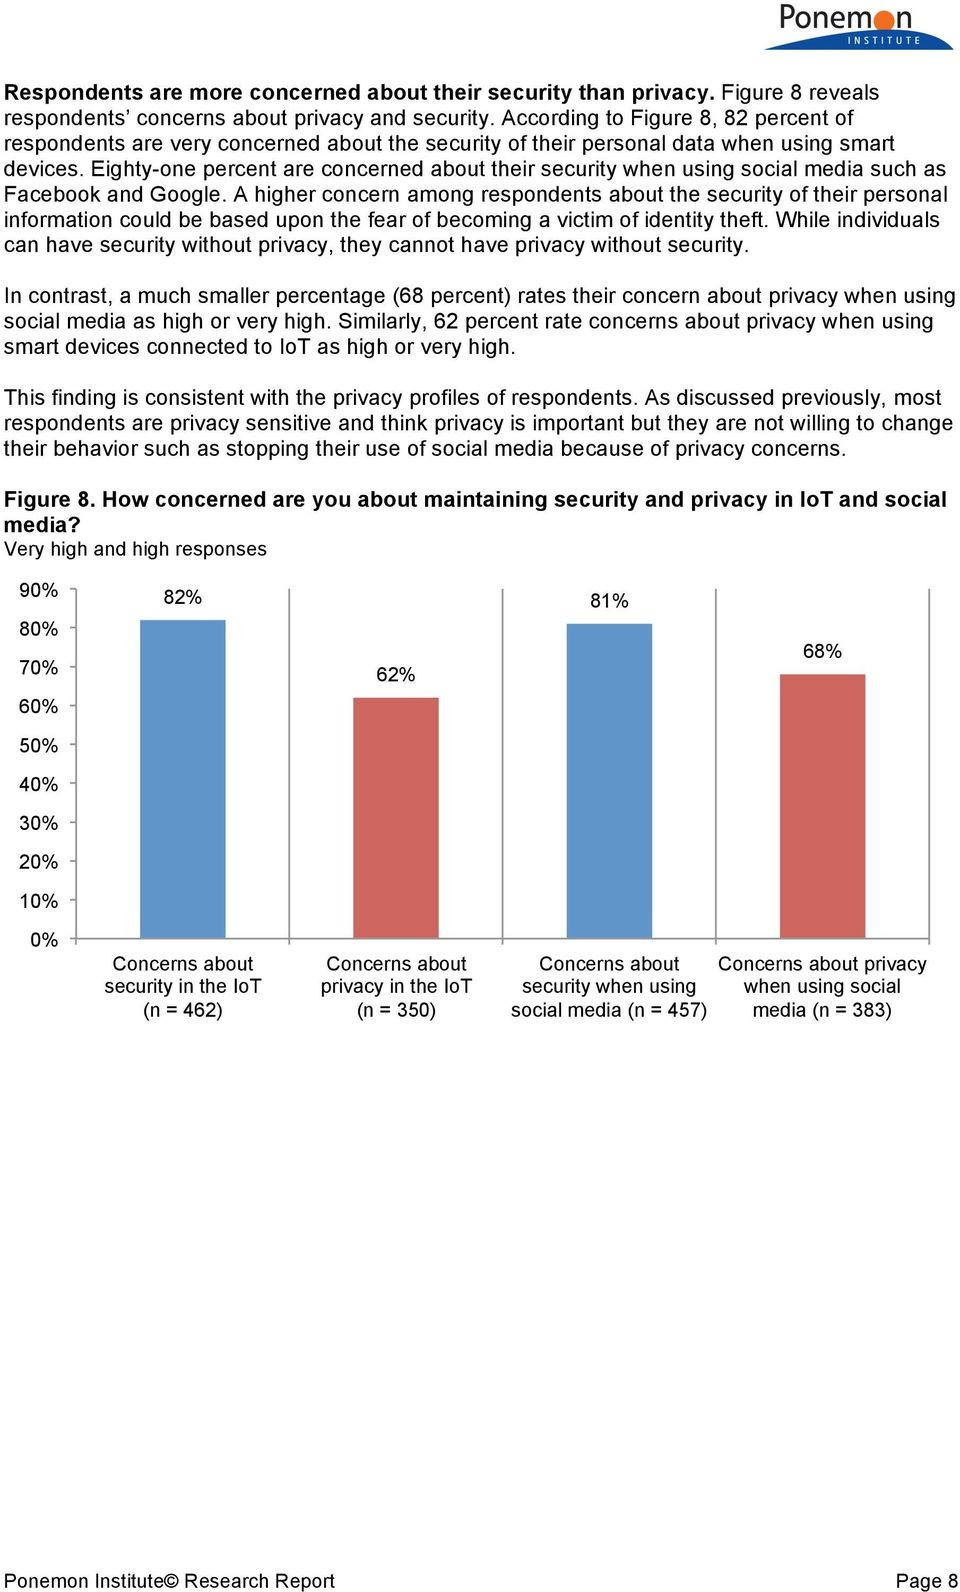 Eighty-one percent are concerned about their security when using social media such as Facebook and Google.